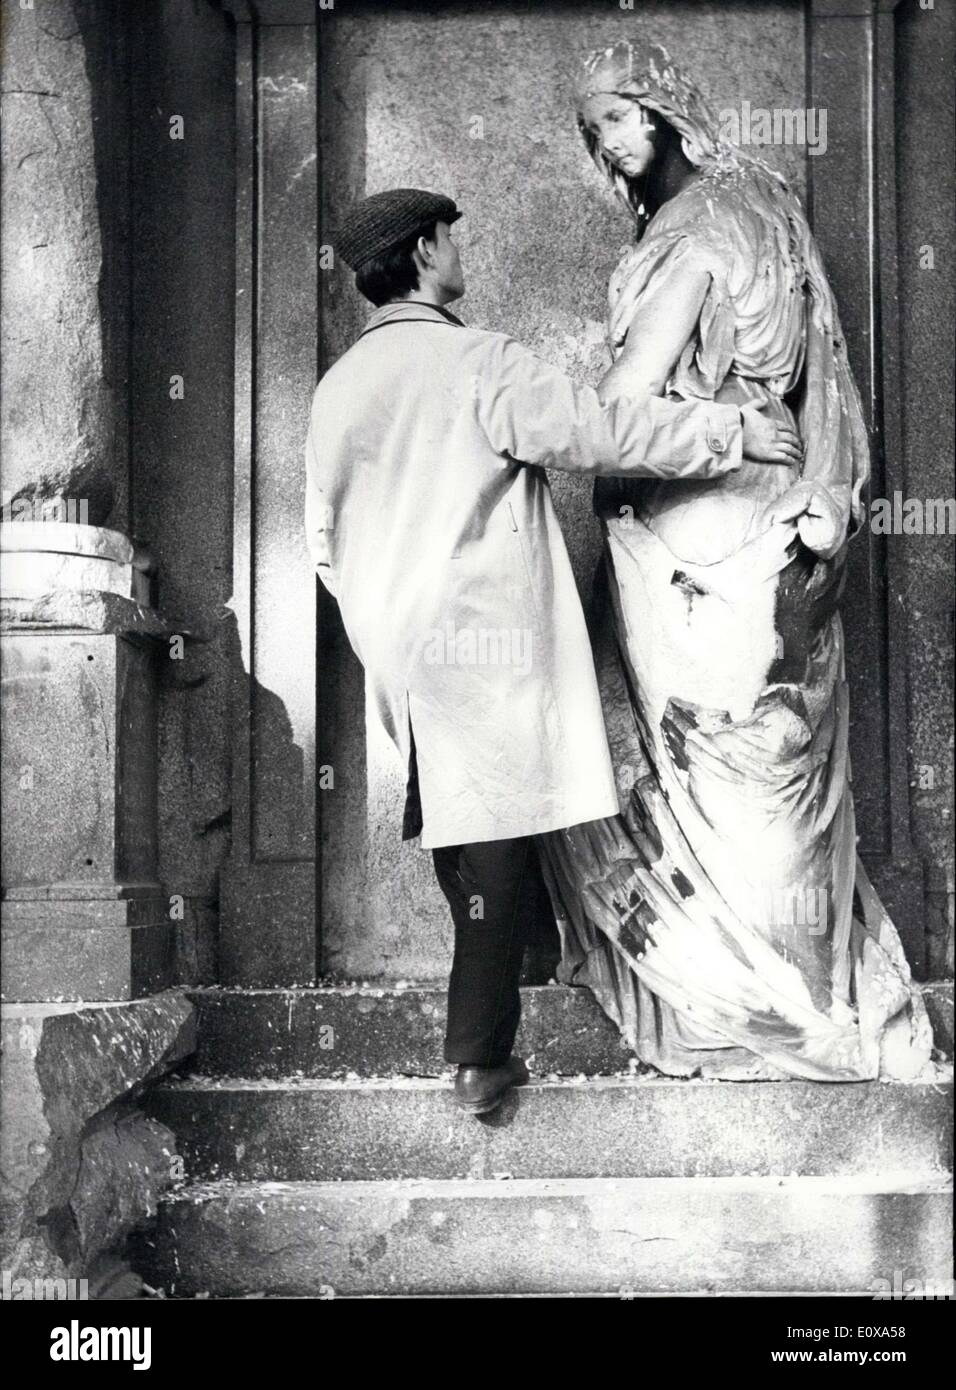 Oct. 27, 1965 - Take Care of his ''Figure''... must this young man, otherwise he could get lost of it. Our photographer saw this ''dissimilar couple'' at Munich's oldest church-yard. - Stock Image